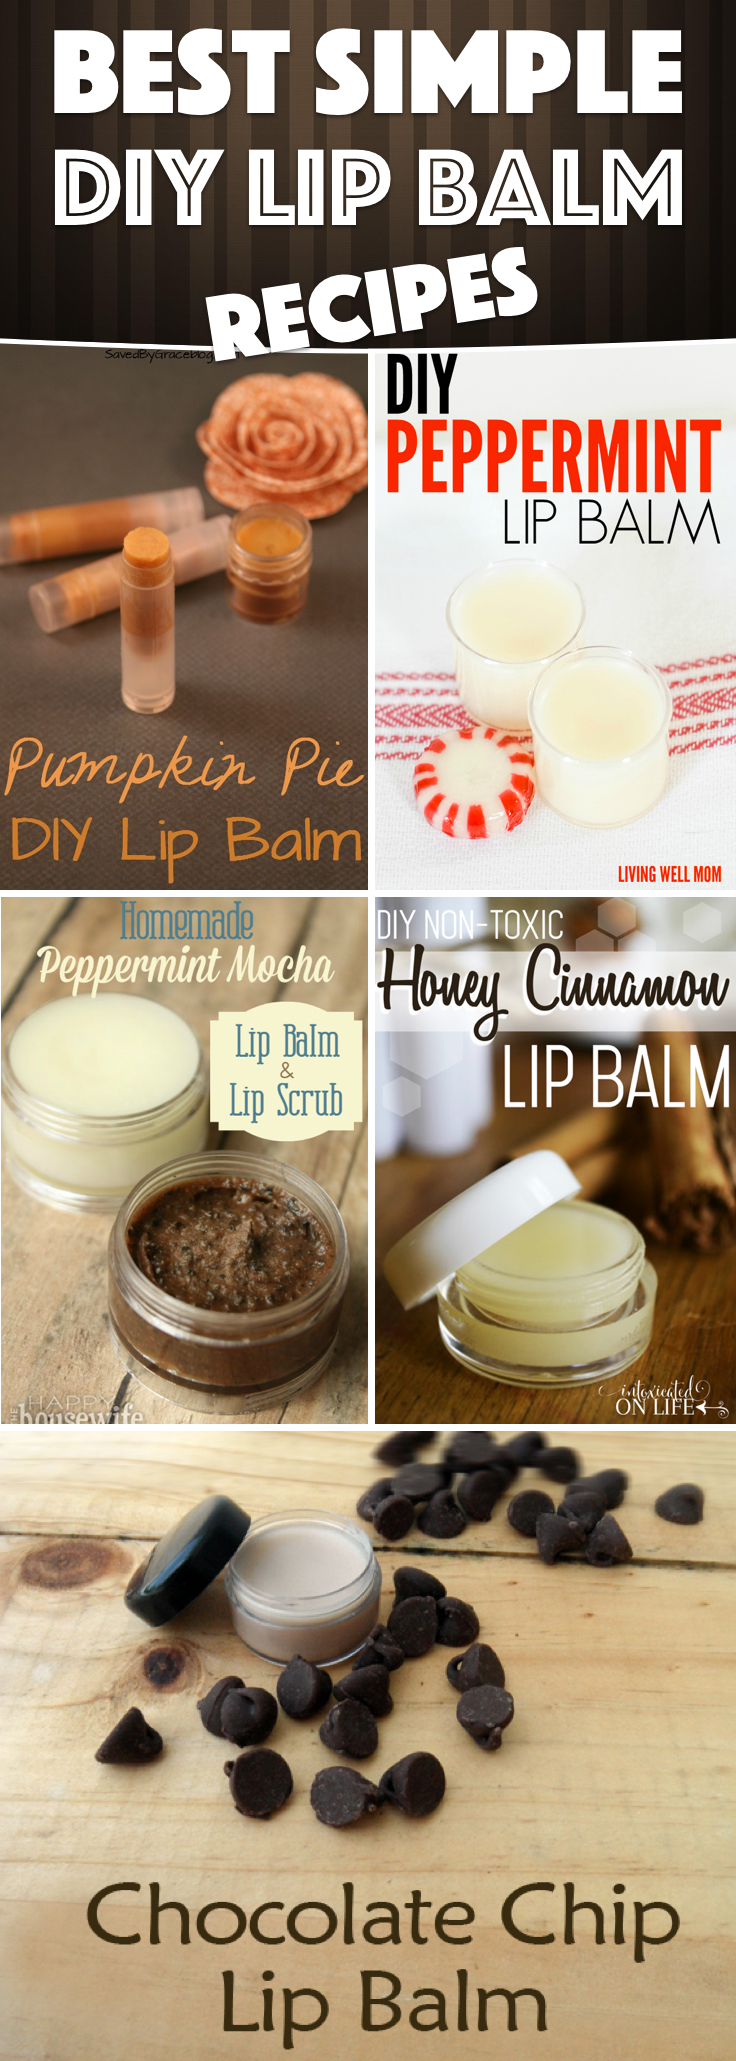 Diy Lip Balm Flavors Make Your Own Diy Lip Balm